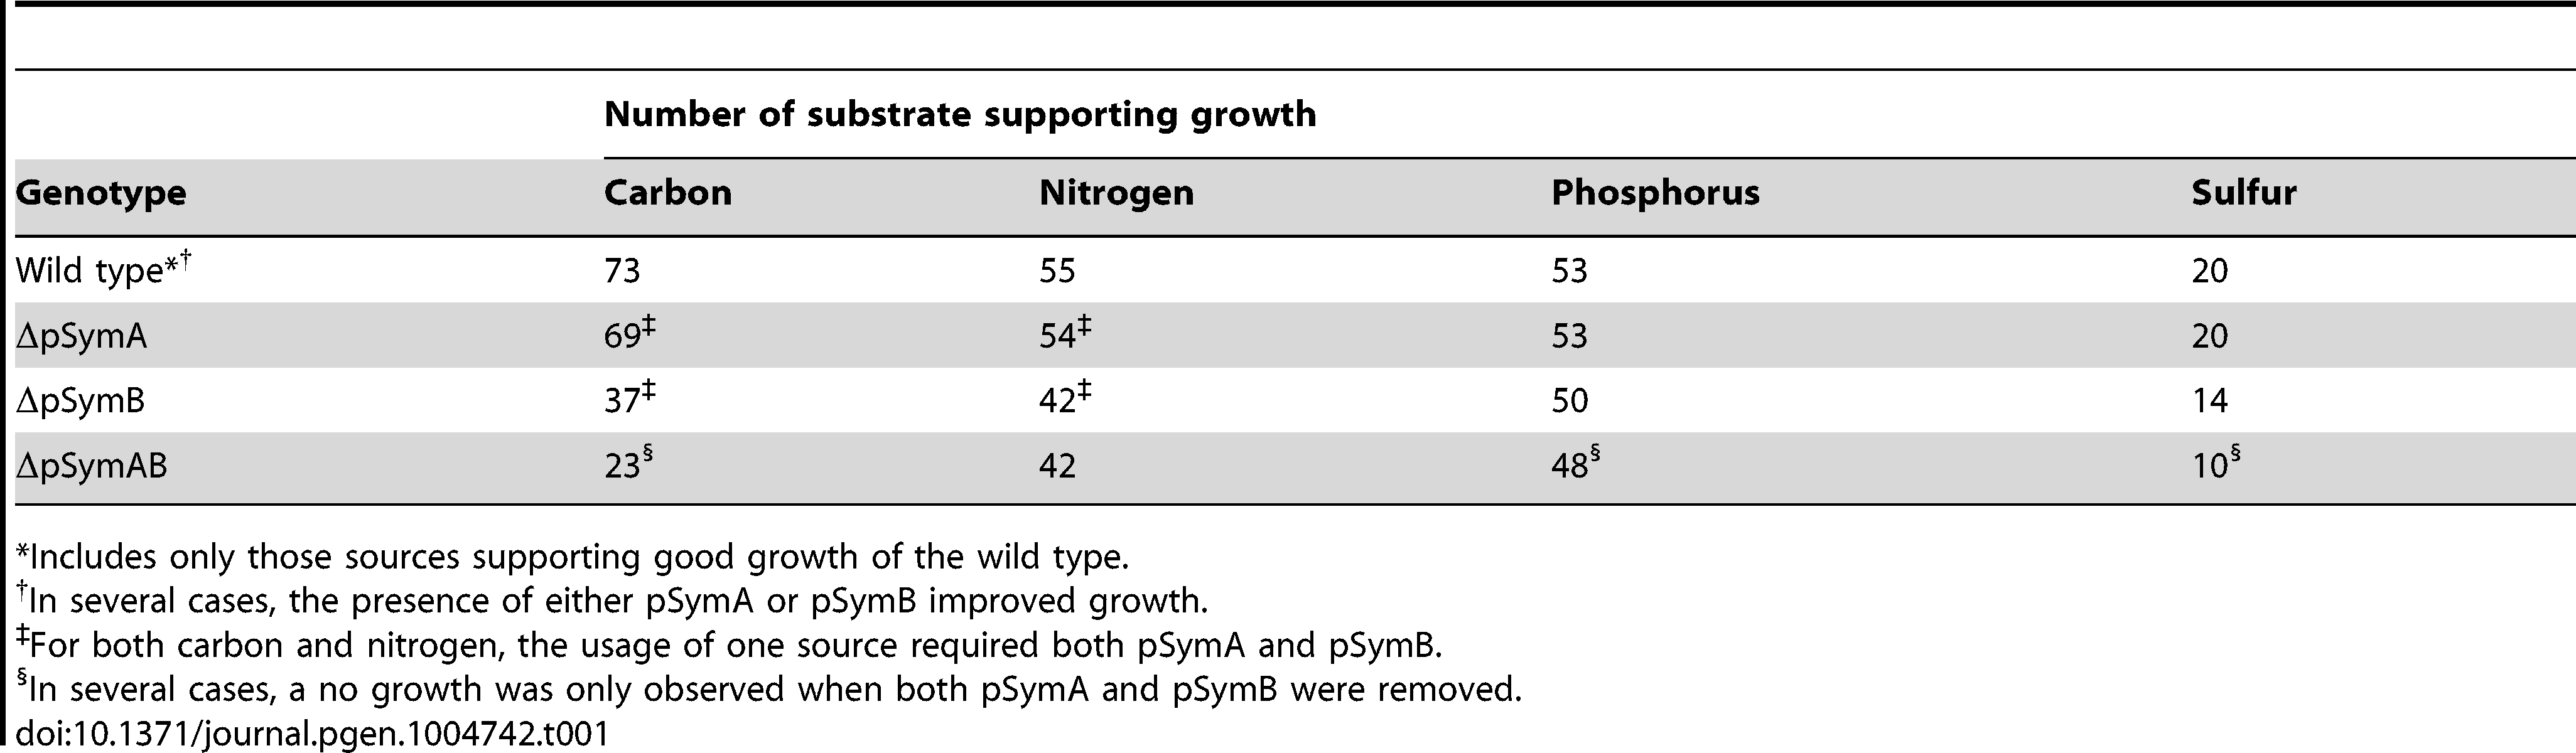 Nutrient sources supporting growth of <i>S. meliloti</i>.